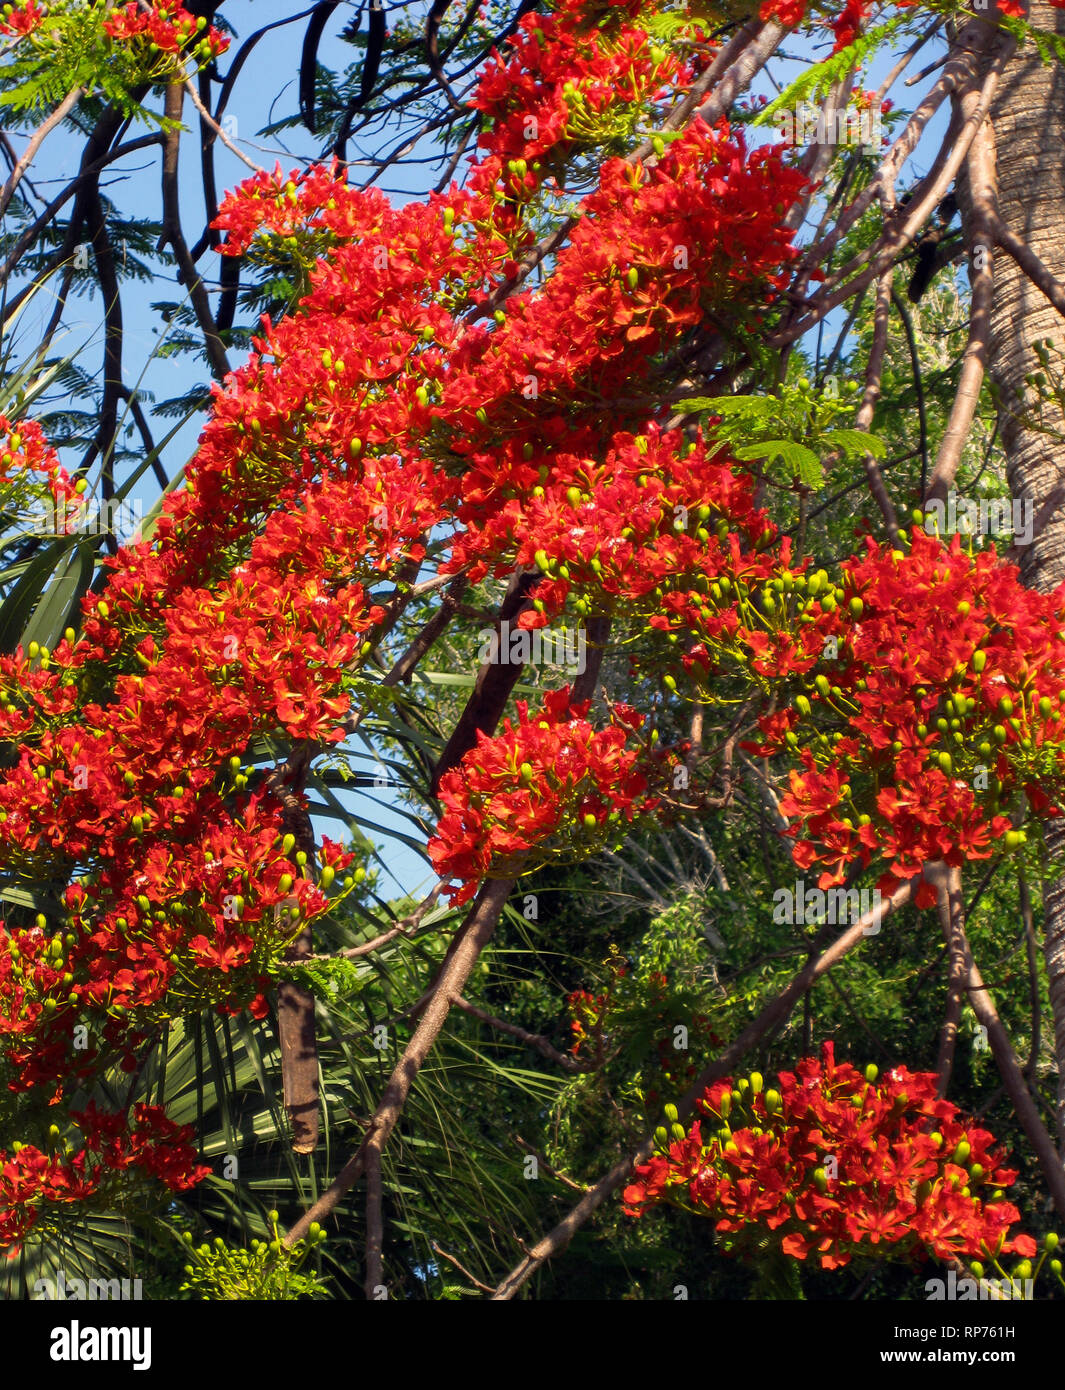 Clusters of scarlet flowers blossom in springtime on showy Royal Poinciana trees (Delonix regia) in southern Florida, USA. This deciduous member of the bean family also is known as the Flame Tree and Flamboyant Tree. The small green bulbs are flower buds that have yet to bloom. - Stock Image